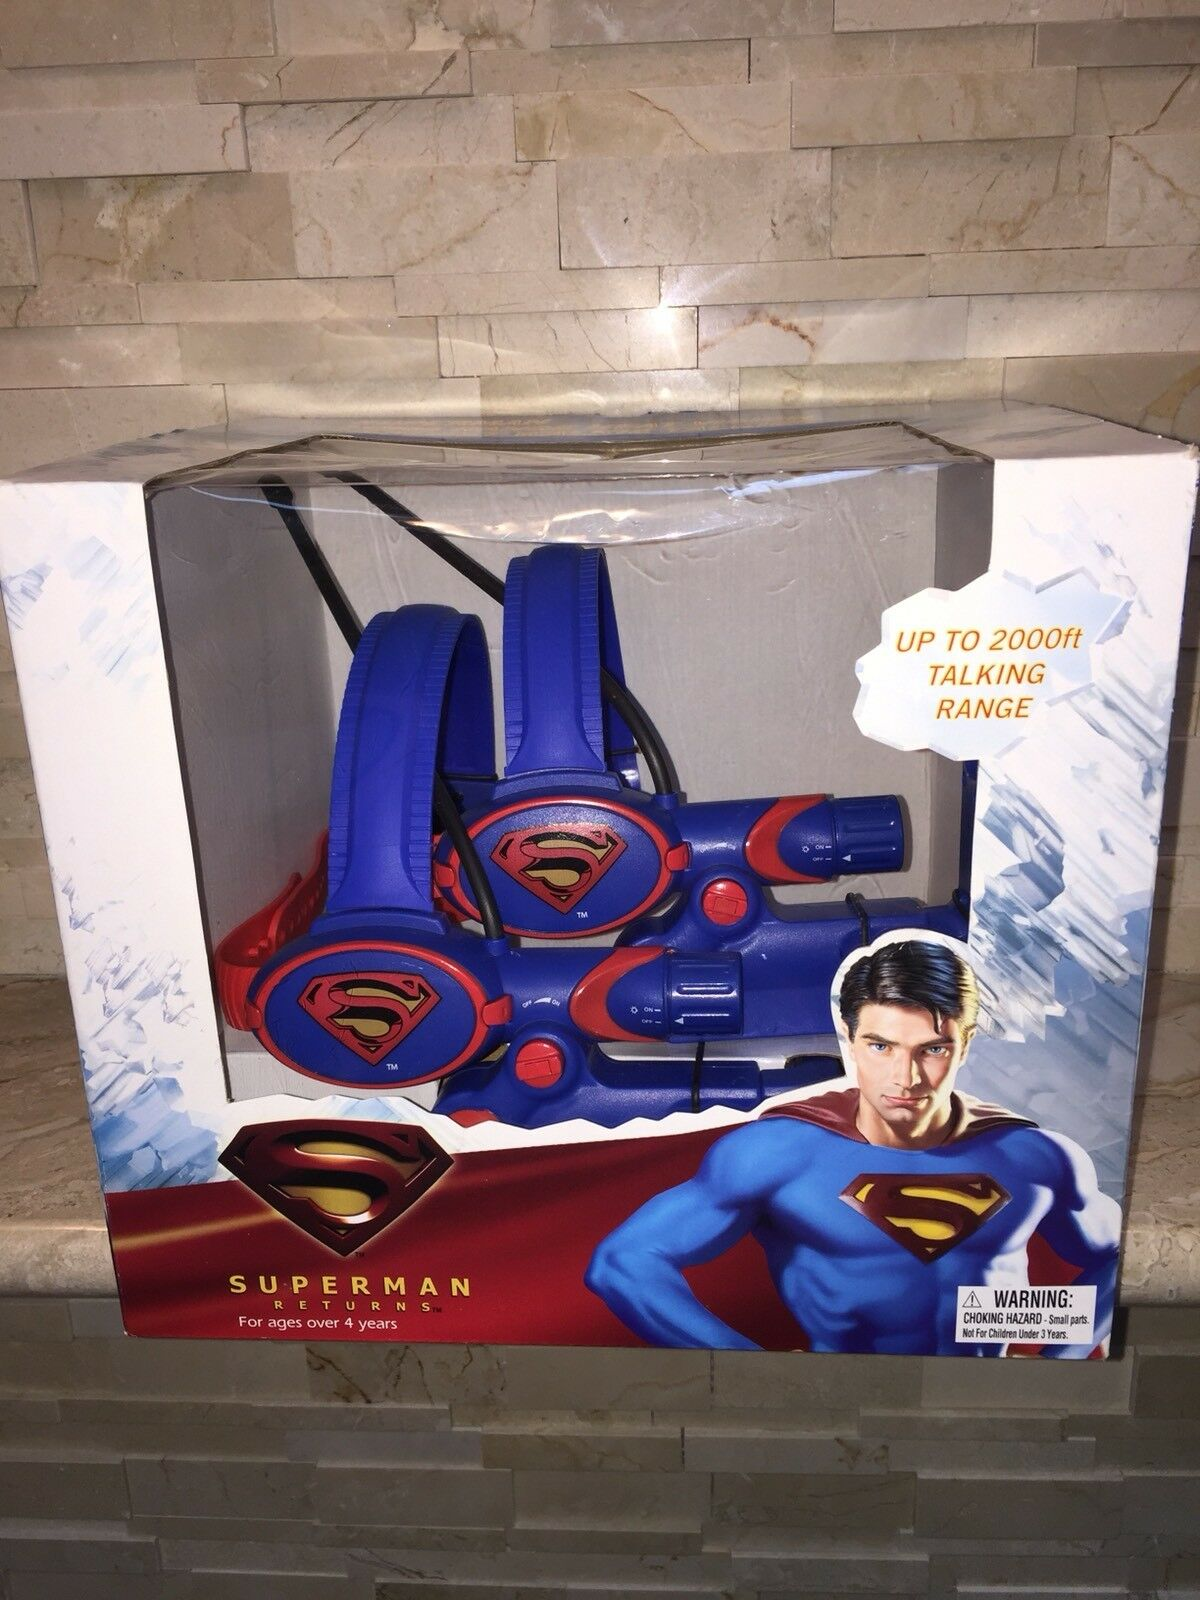 SUPERMAN LONG RANGE HEAT VISION HEADSET WALKIE TALKIES